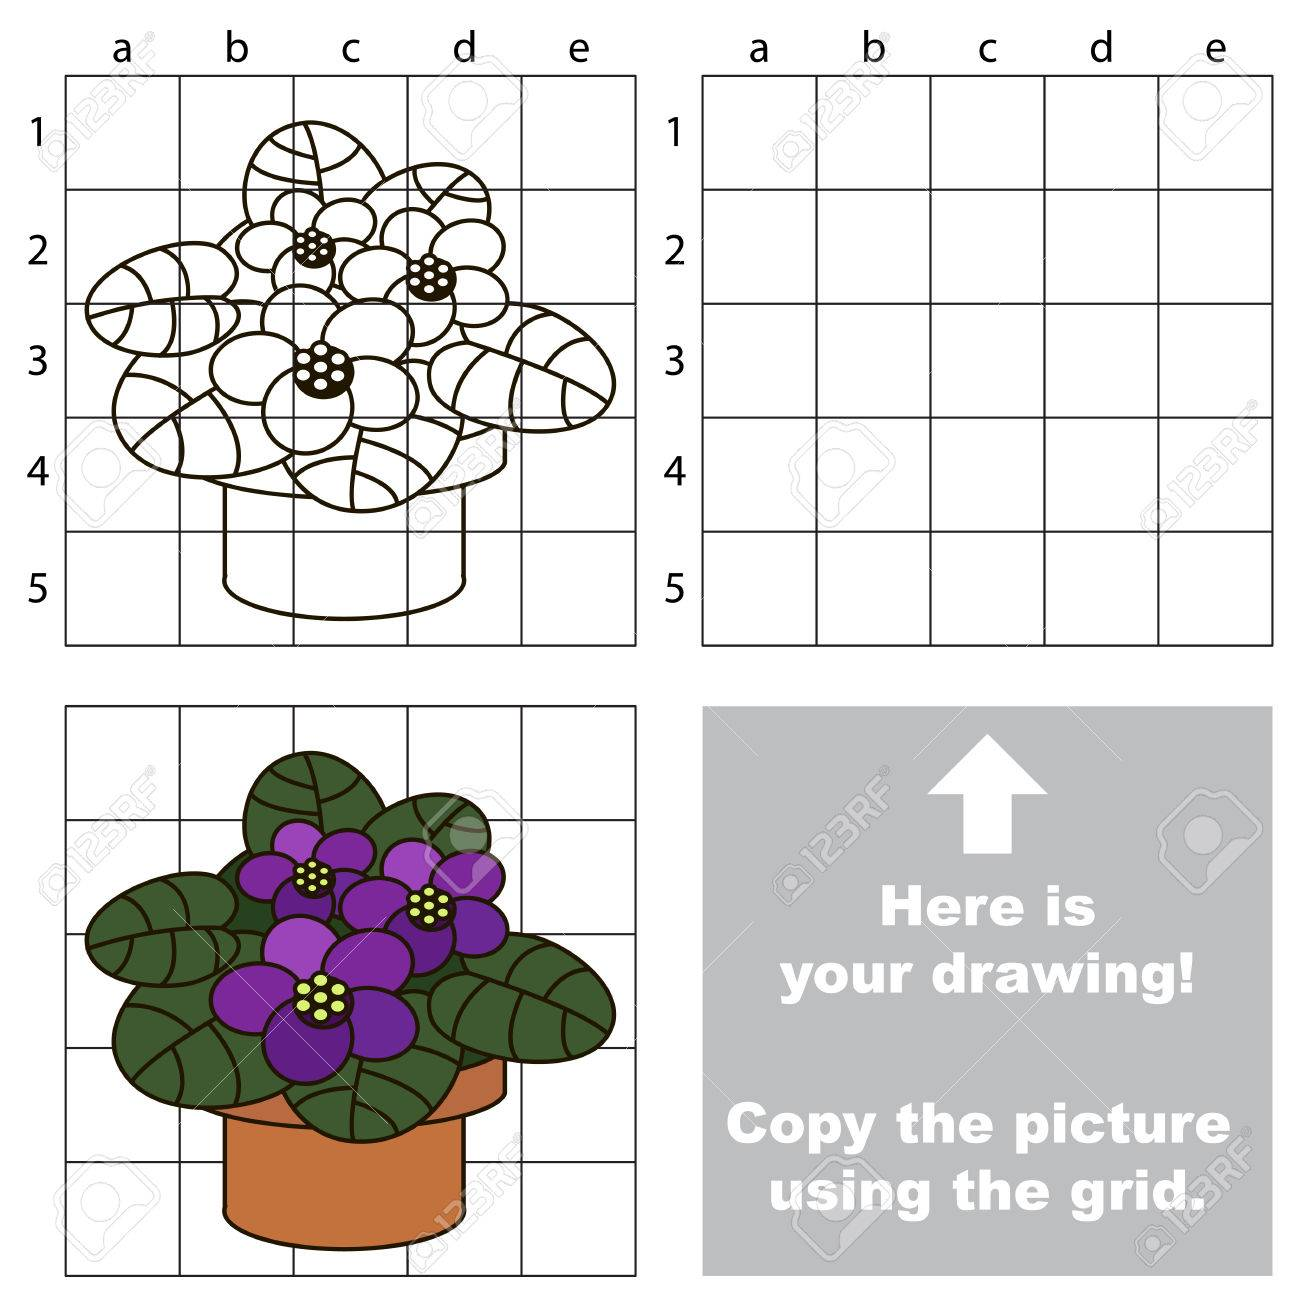 Copy The Picture Using Grid Lines The Simple Educational Game Royalty Free Cliparts Vectors And Stock Illustration Image 77928029